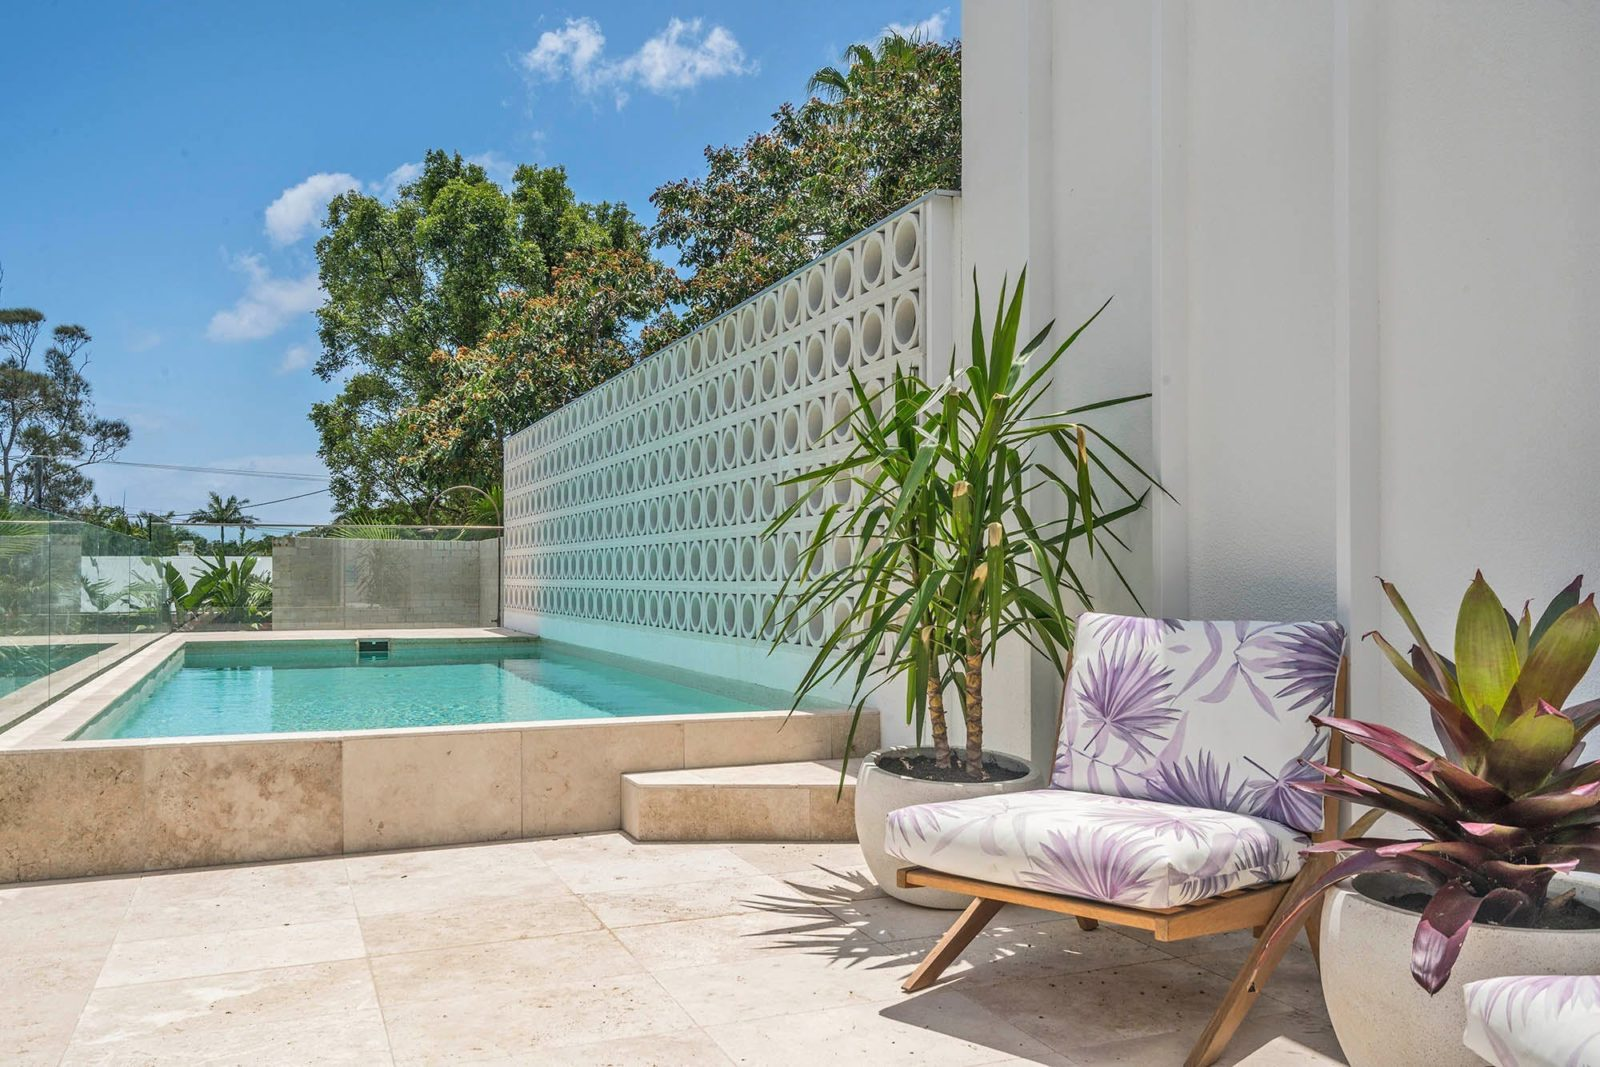 The Cedrics 1 - Byron Bay - Pool and Outdoor Seating b